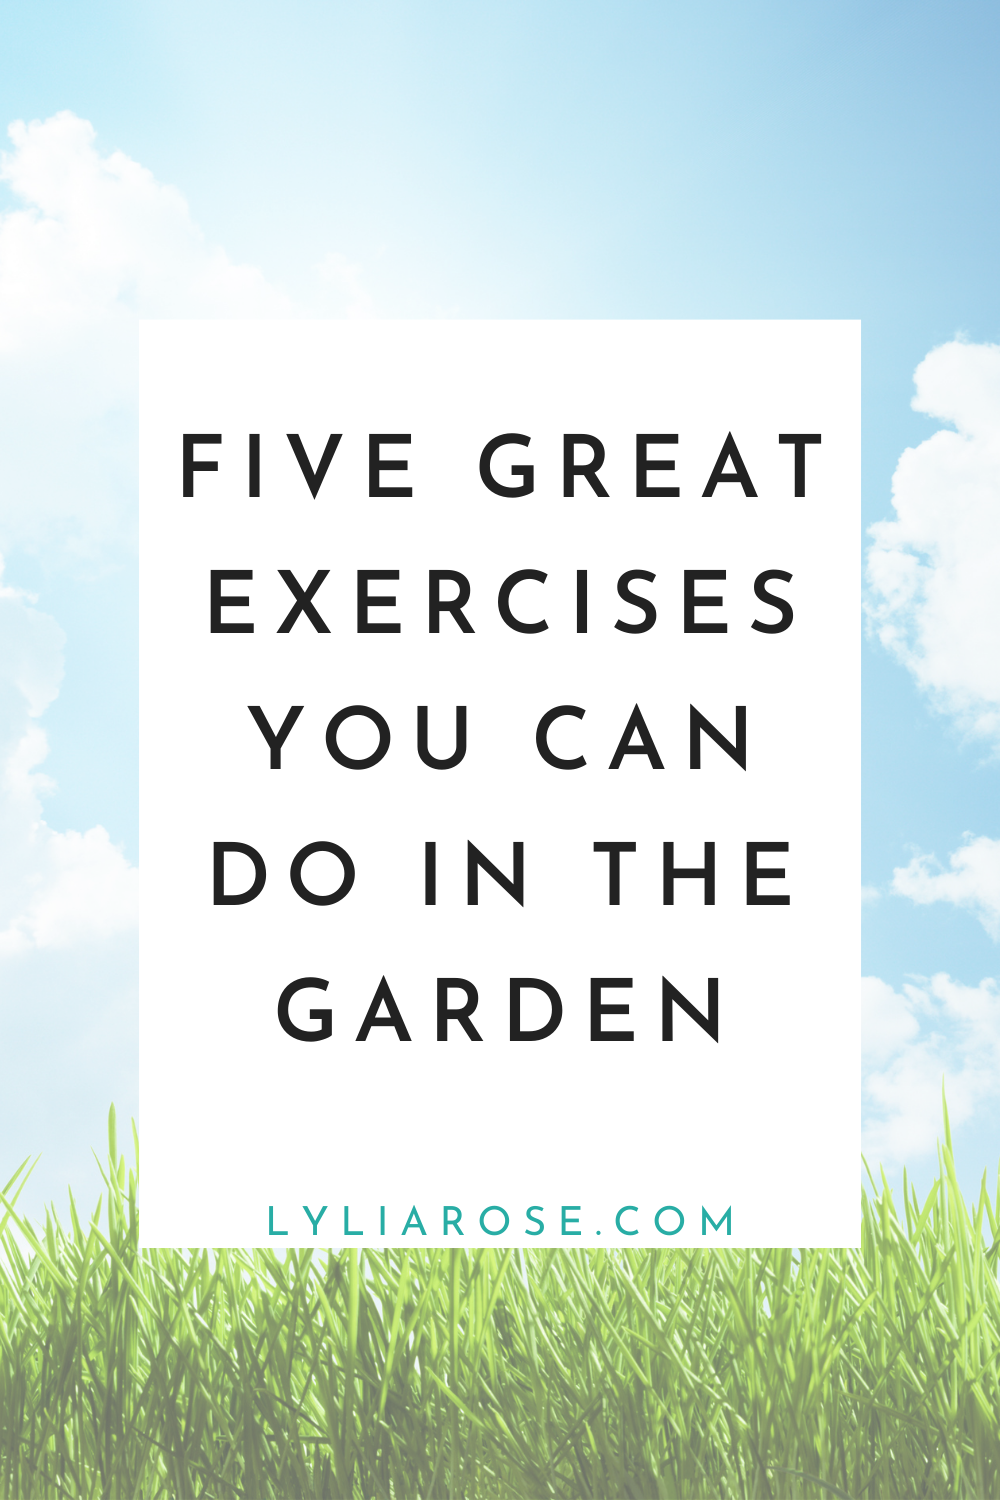 Five great exercises you can do in the garden